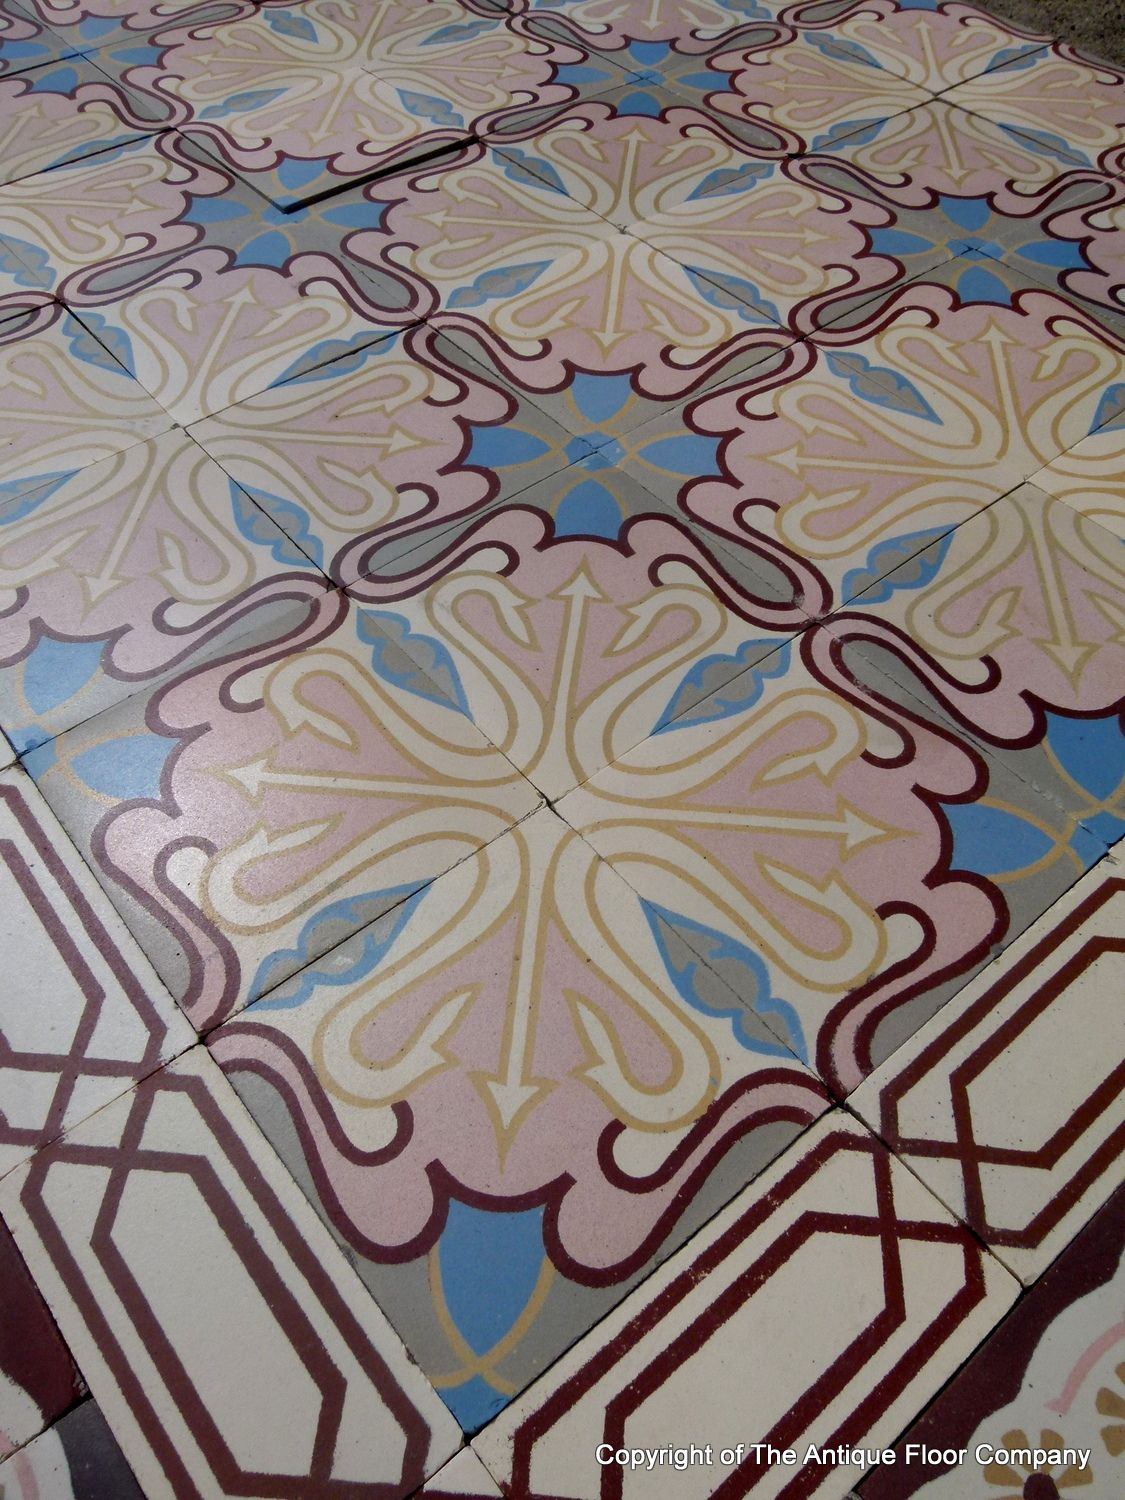 Deco floor tile image collections home flooring design antique floor tile gallery tile flooring design ideas art deco floor tile choice image tile flooring dailygadgetfo Choice Image